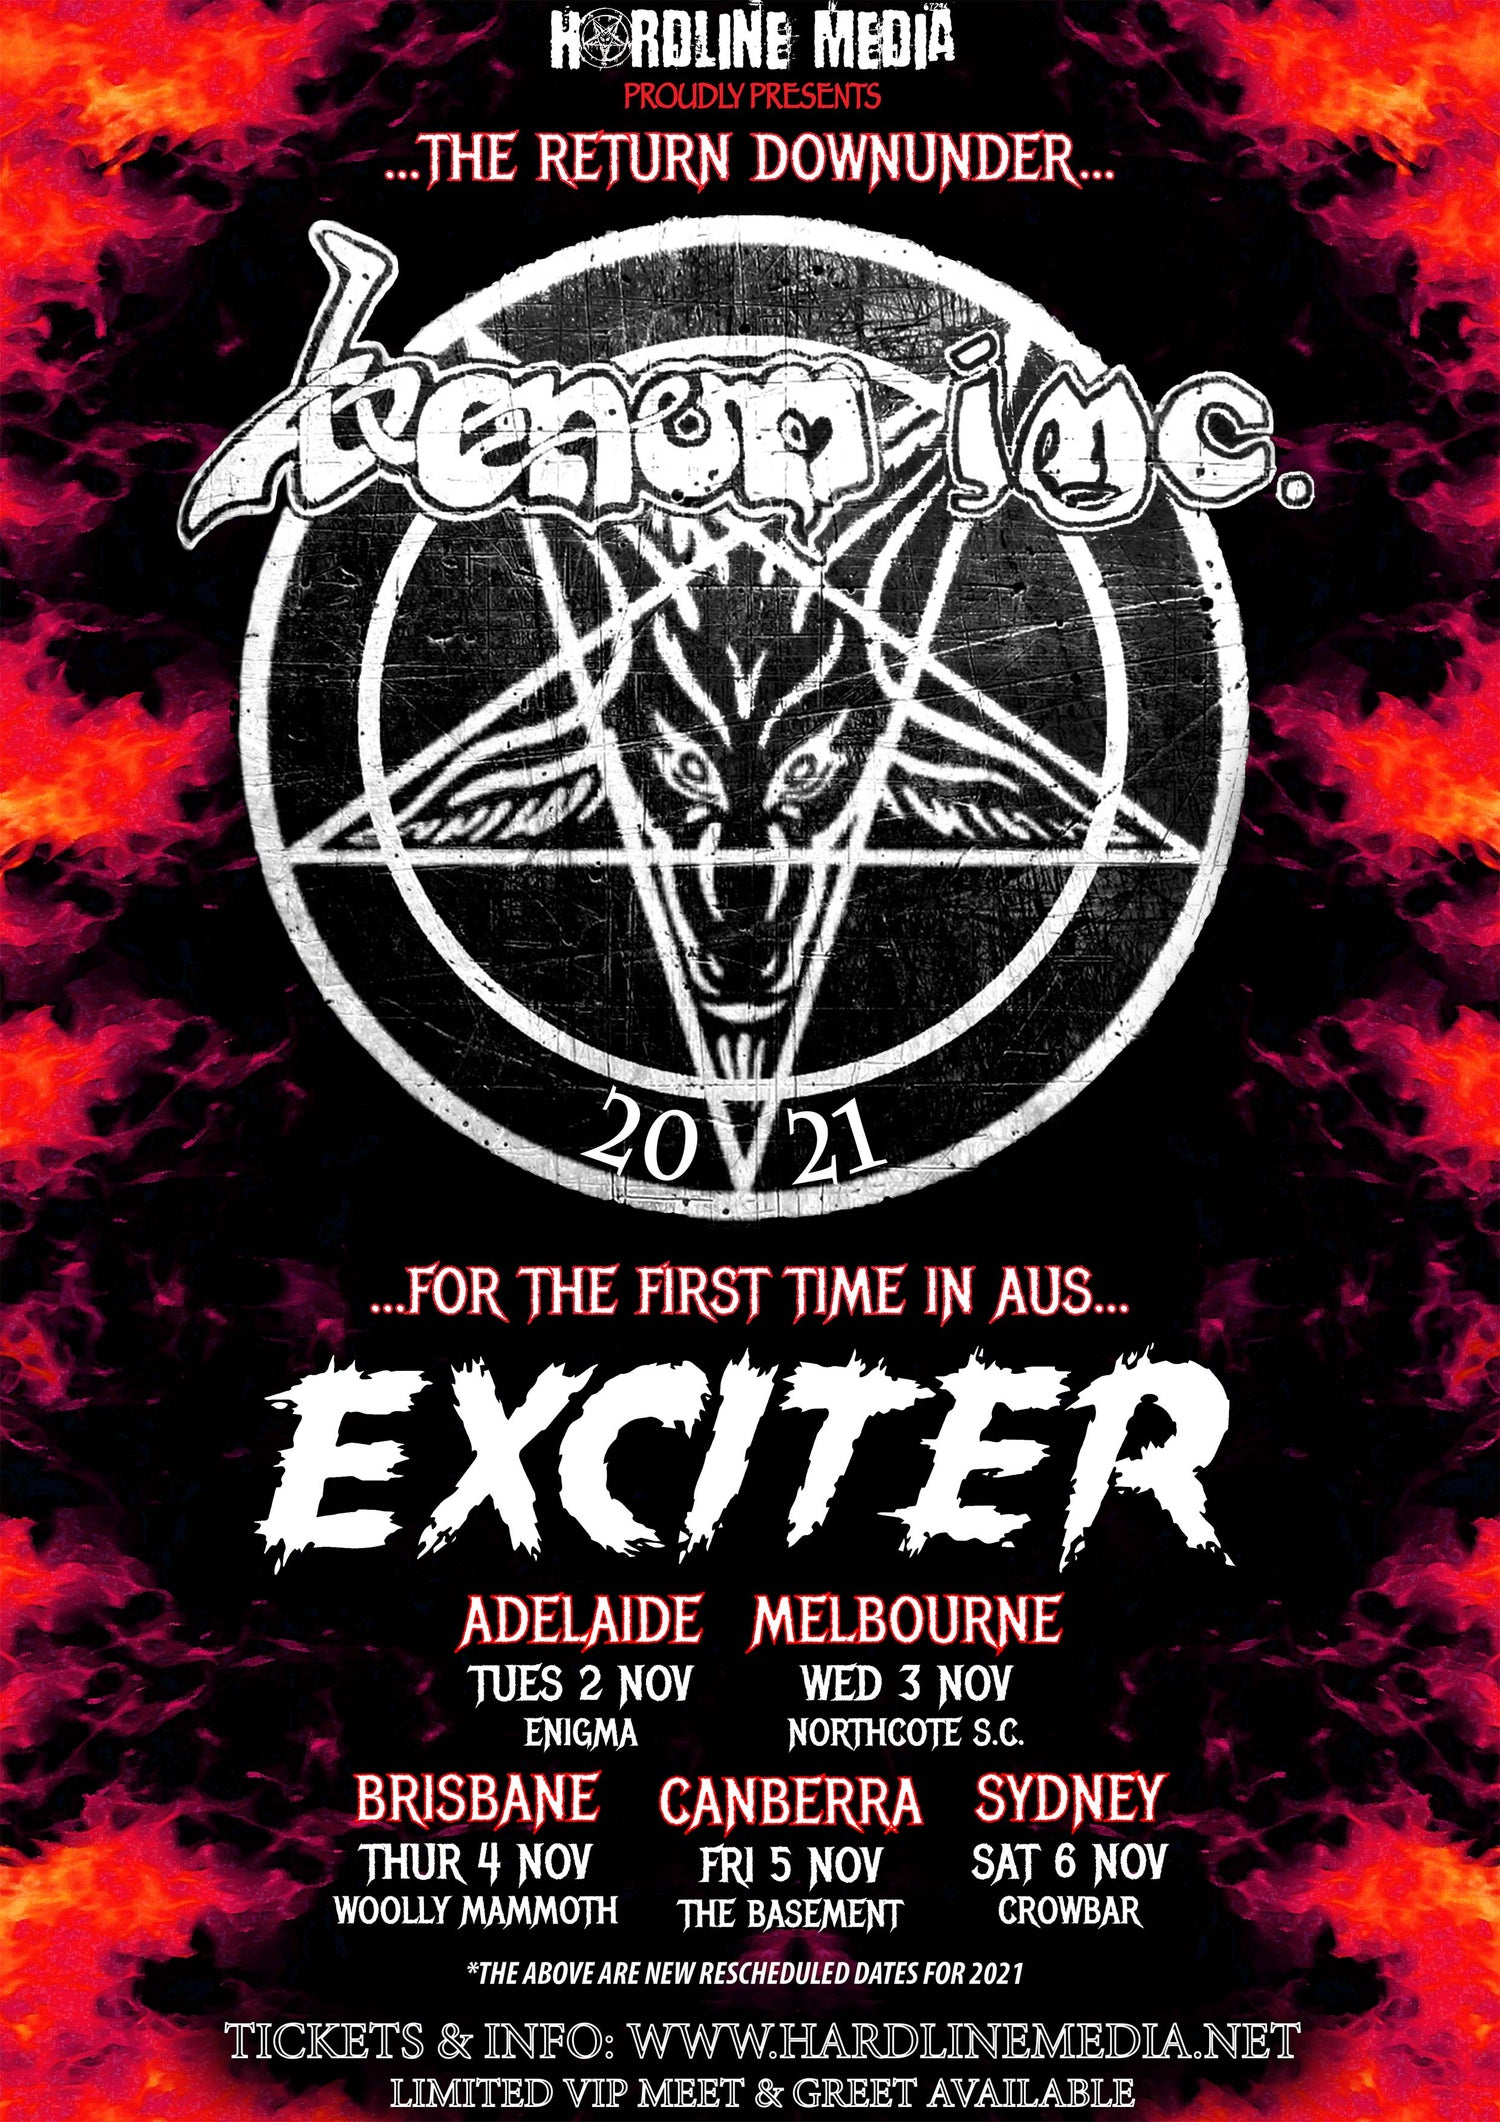 Image of VIP TICKET - VENOM INC + EXCITER - BRISBANE, WOOLLY MAMMOTH - THUR 4 NOV 2021